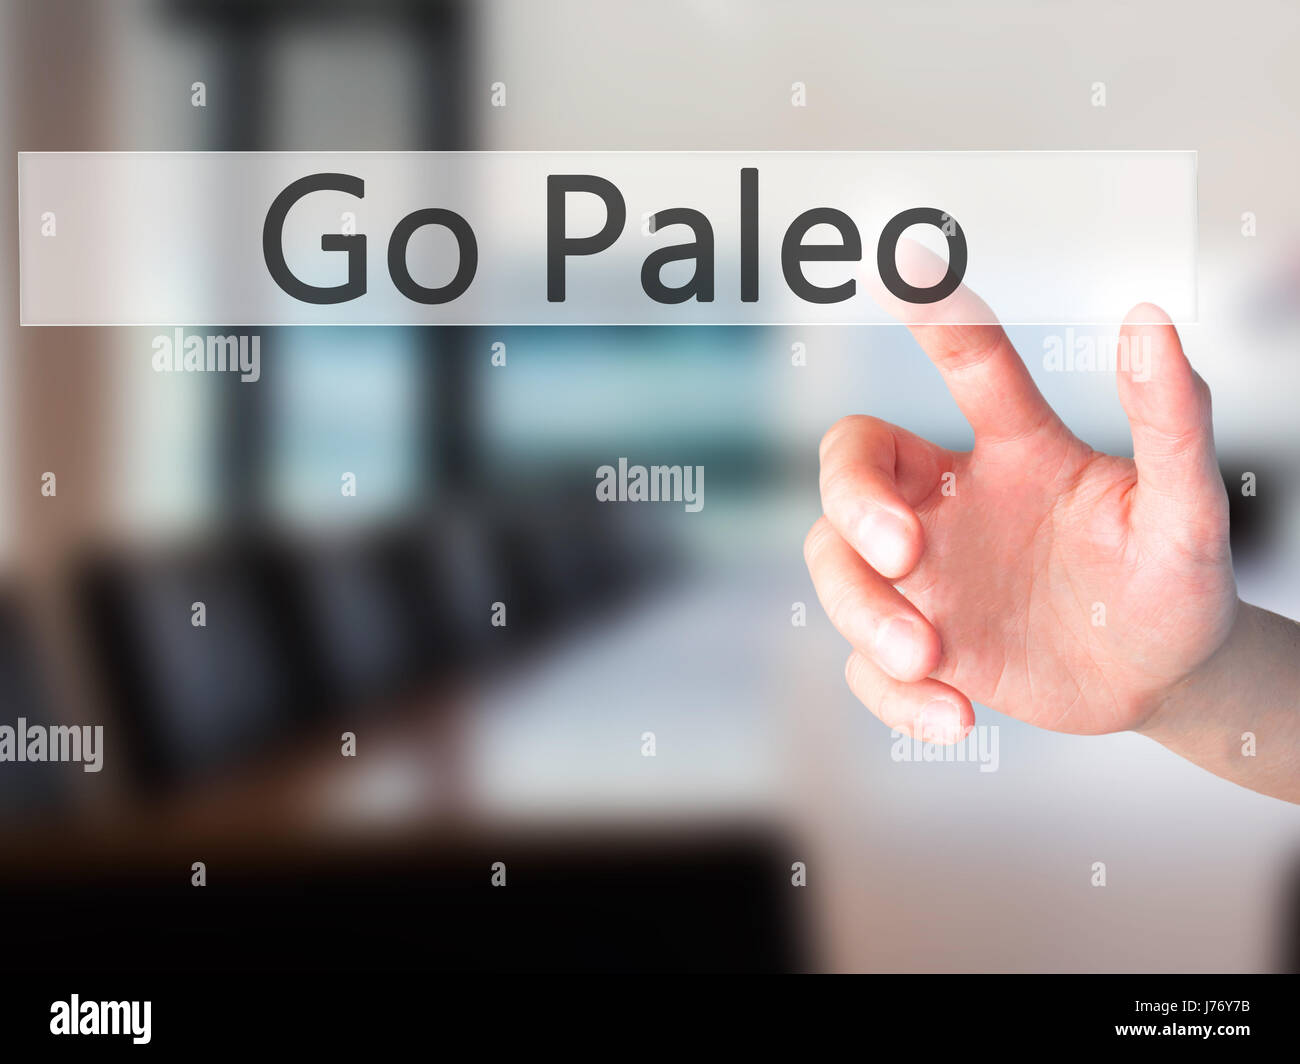 Go Paleo - Hand pressing a button on blurred background concept . Business, technology, internet concept. Stock - Stock Image